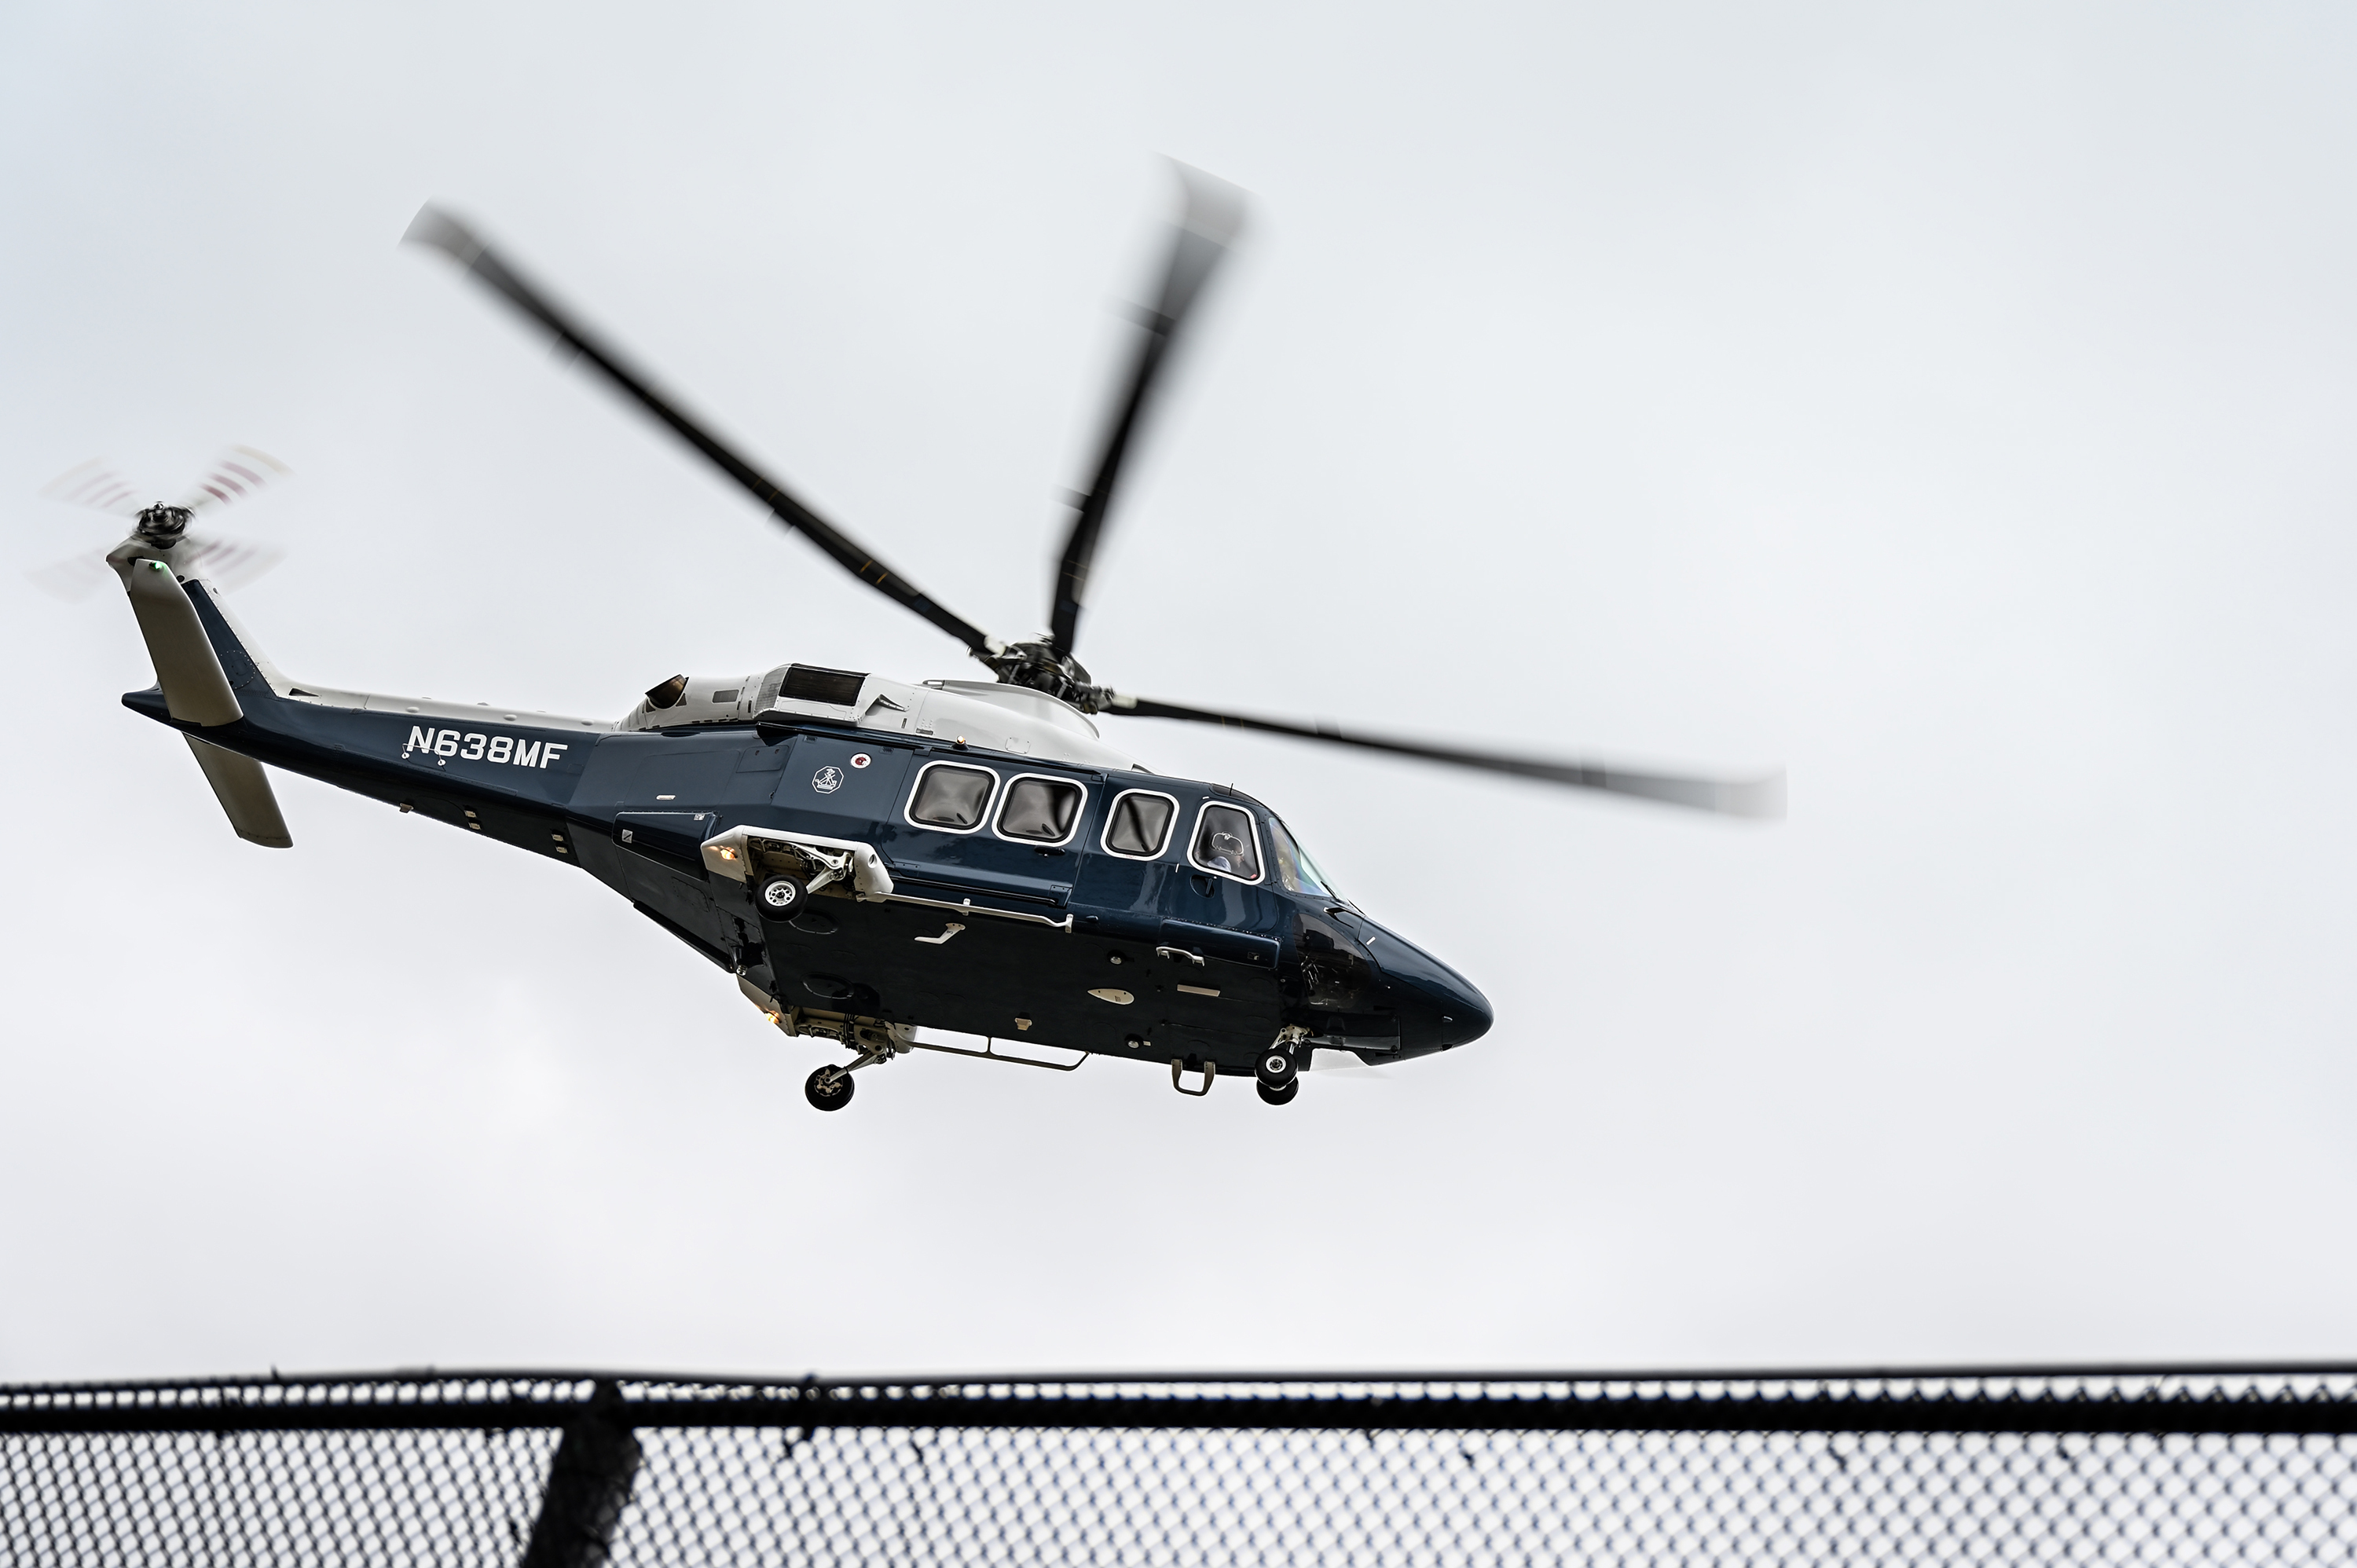 A helicopter takes from West 30th Street V.I.P Heliport in Manhattan, Nov. 12, 2020.